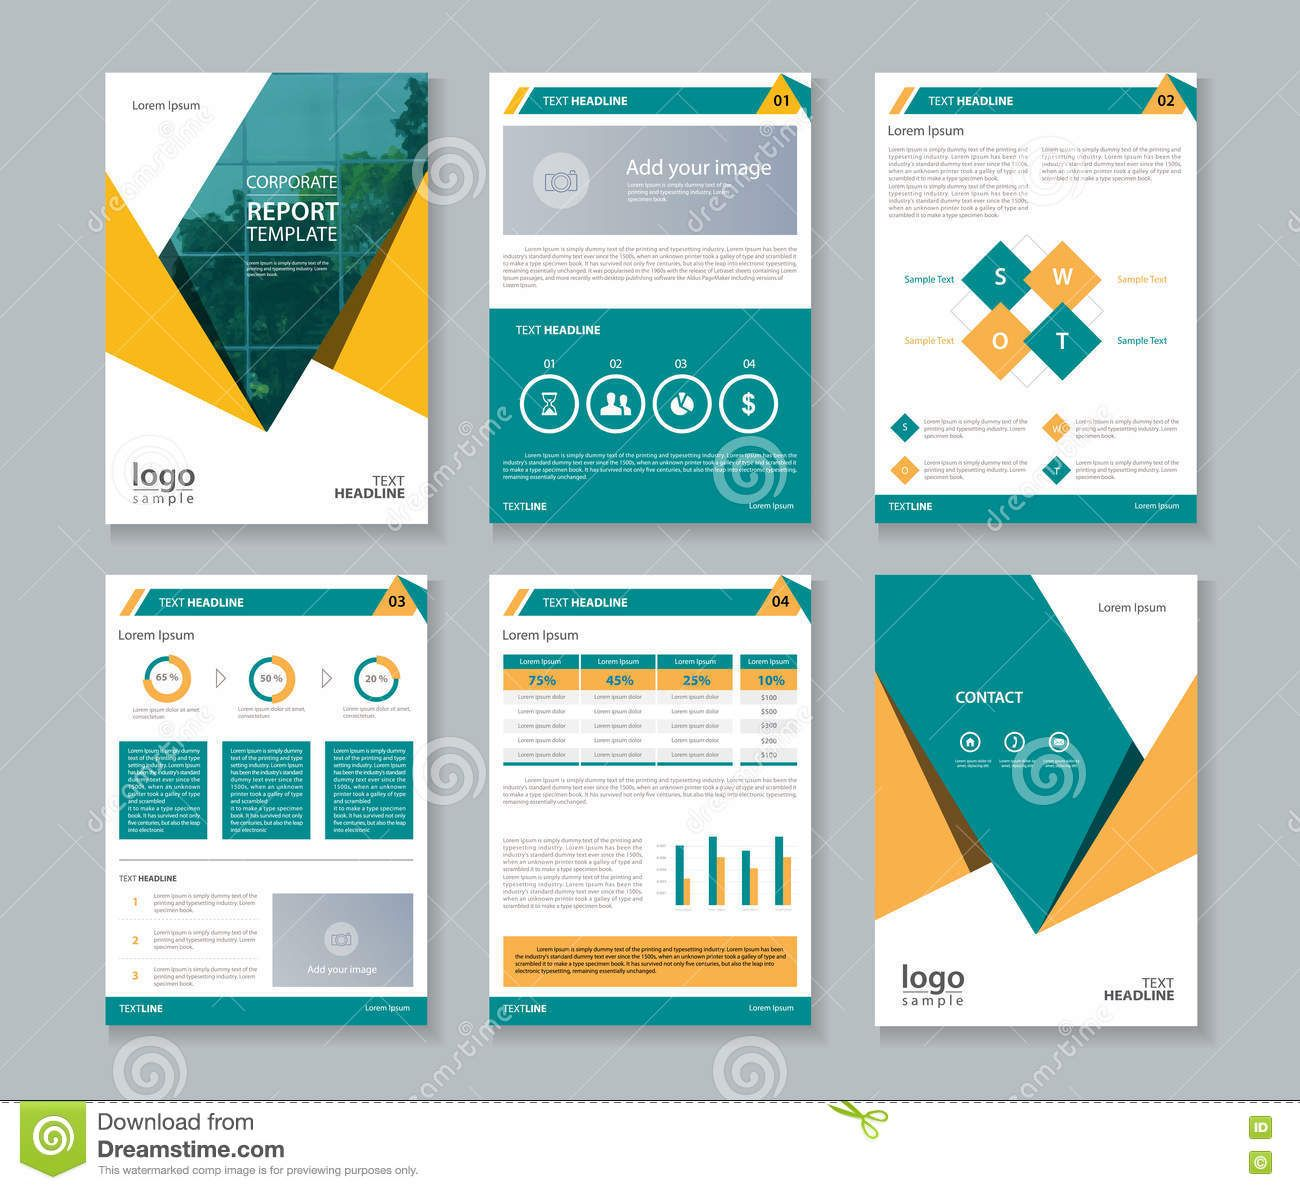 one page brochure templates - image result for company profile layout travel